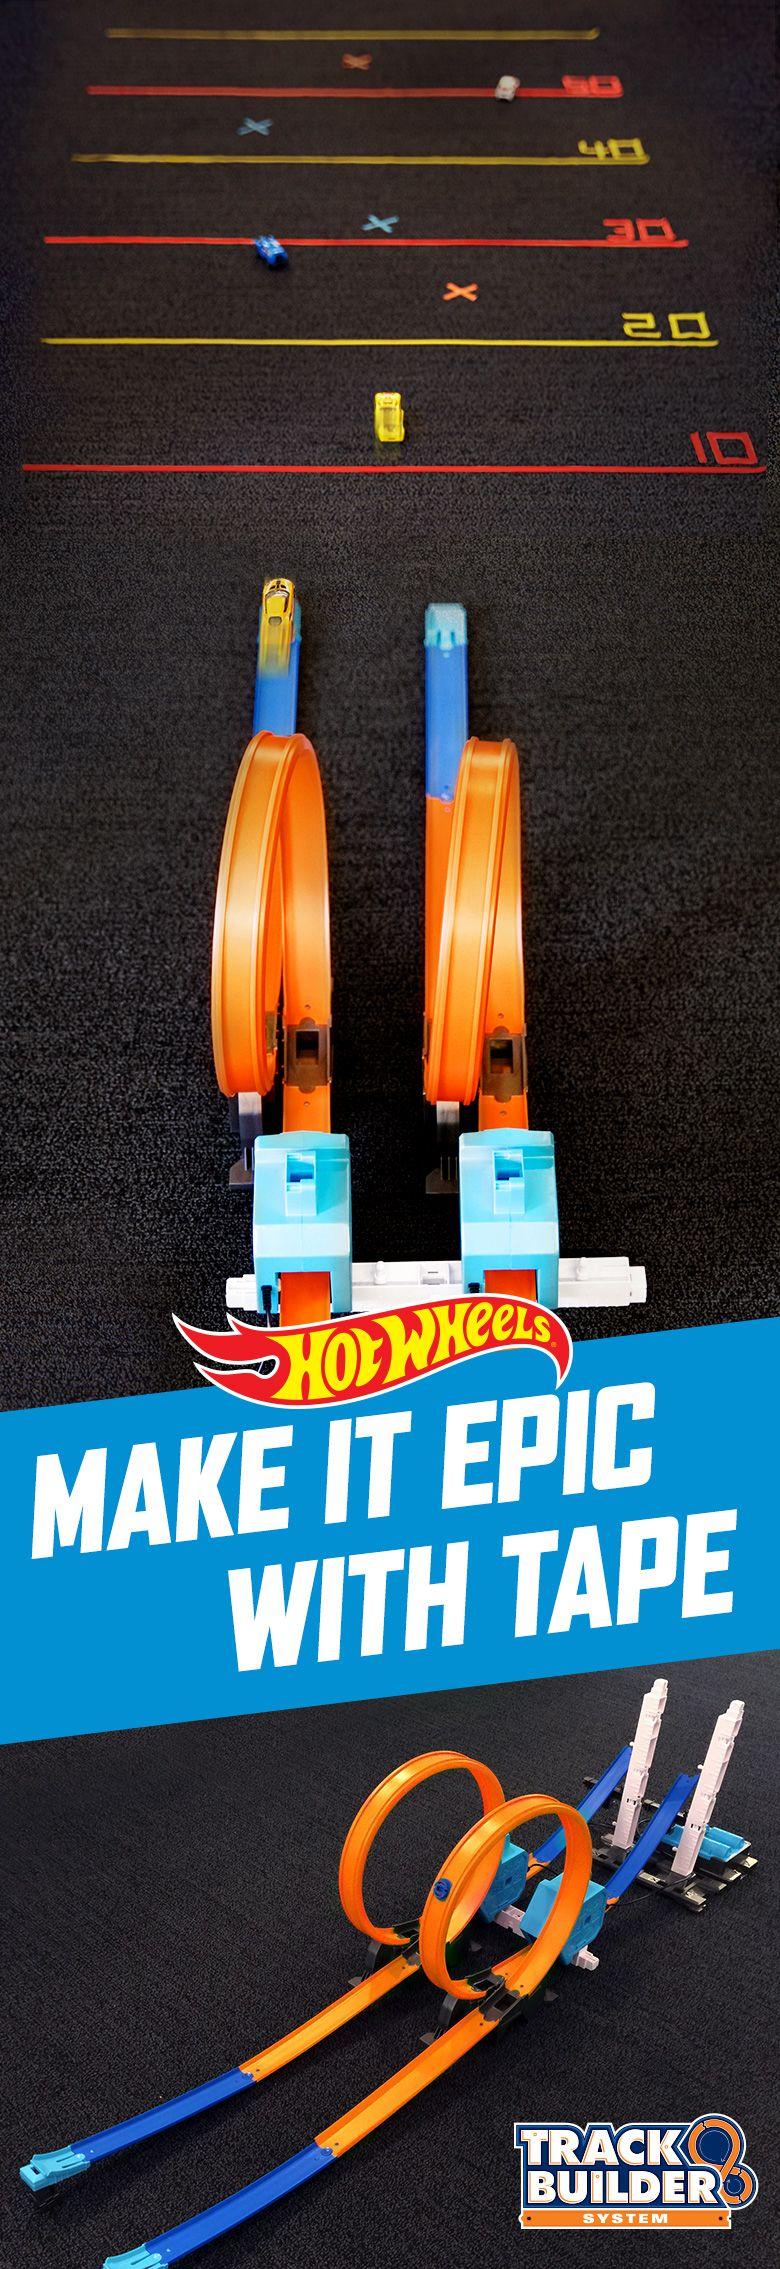 hot wheels track builder stunt kit instructions